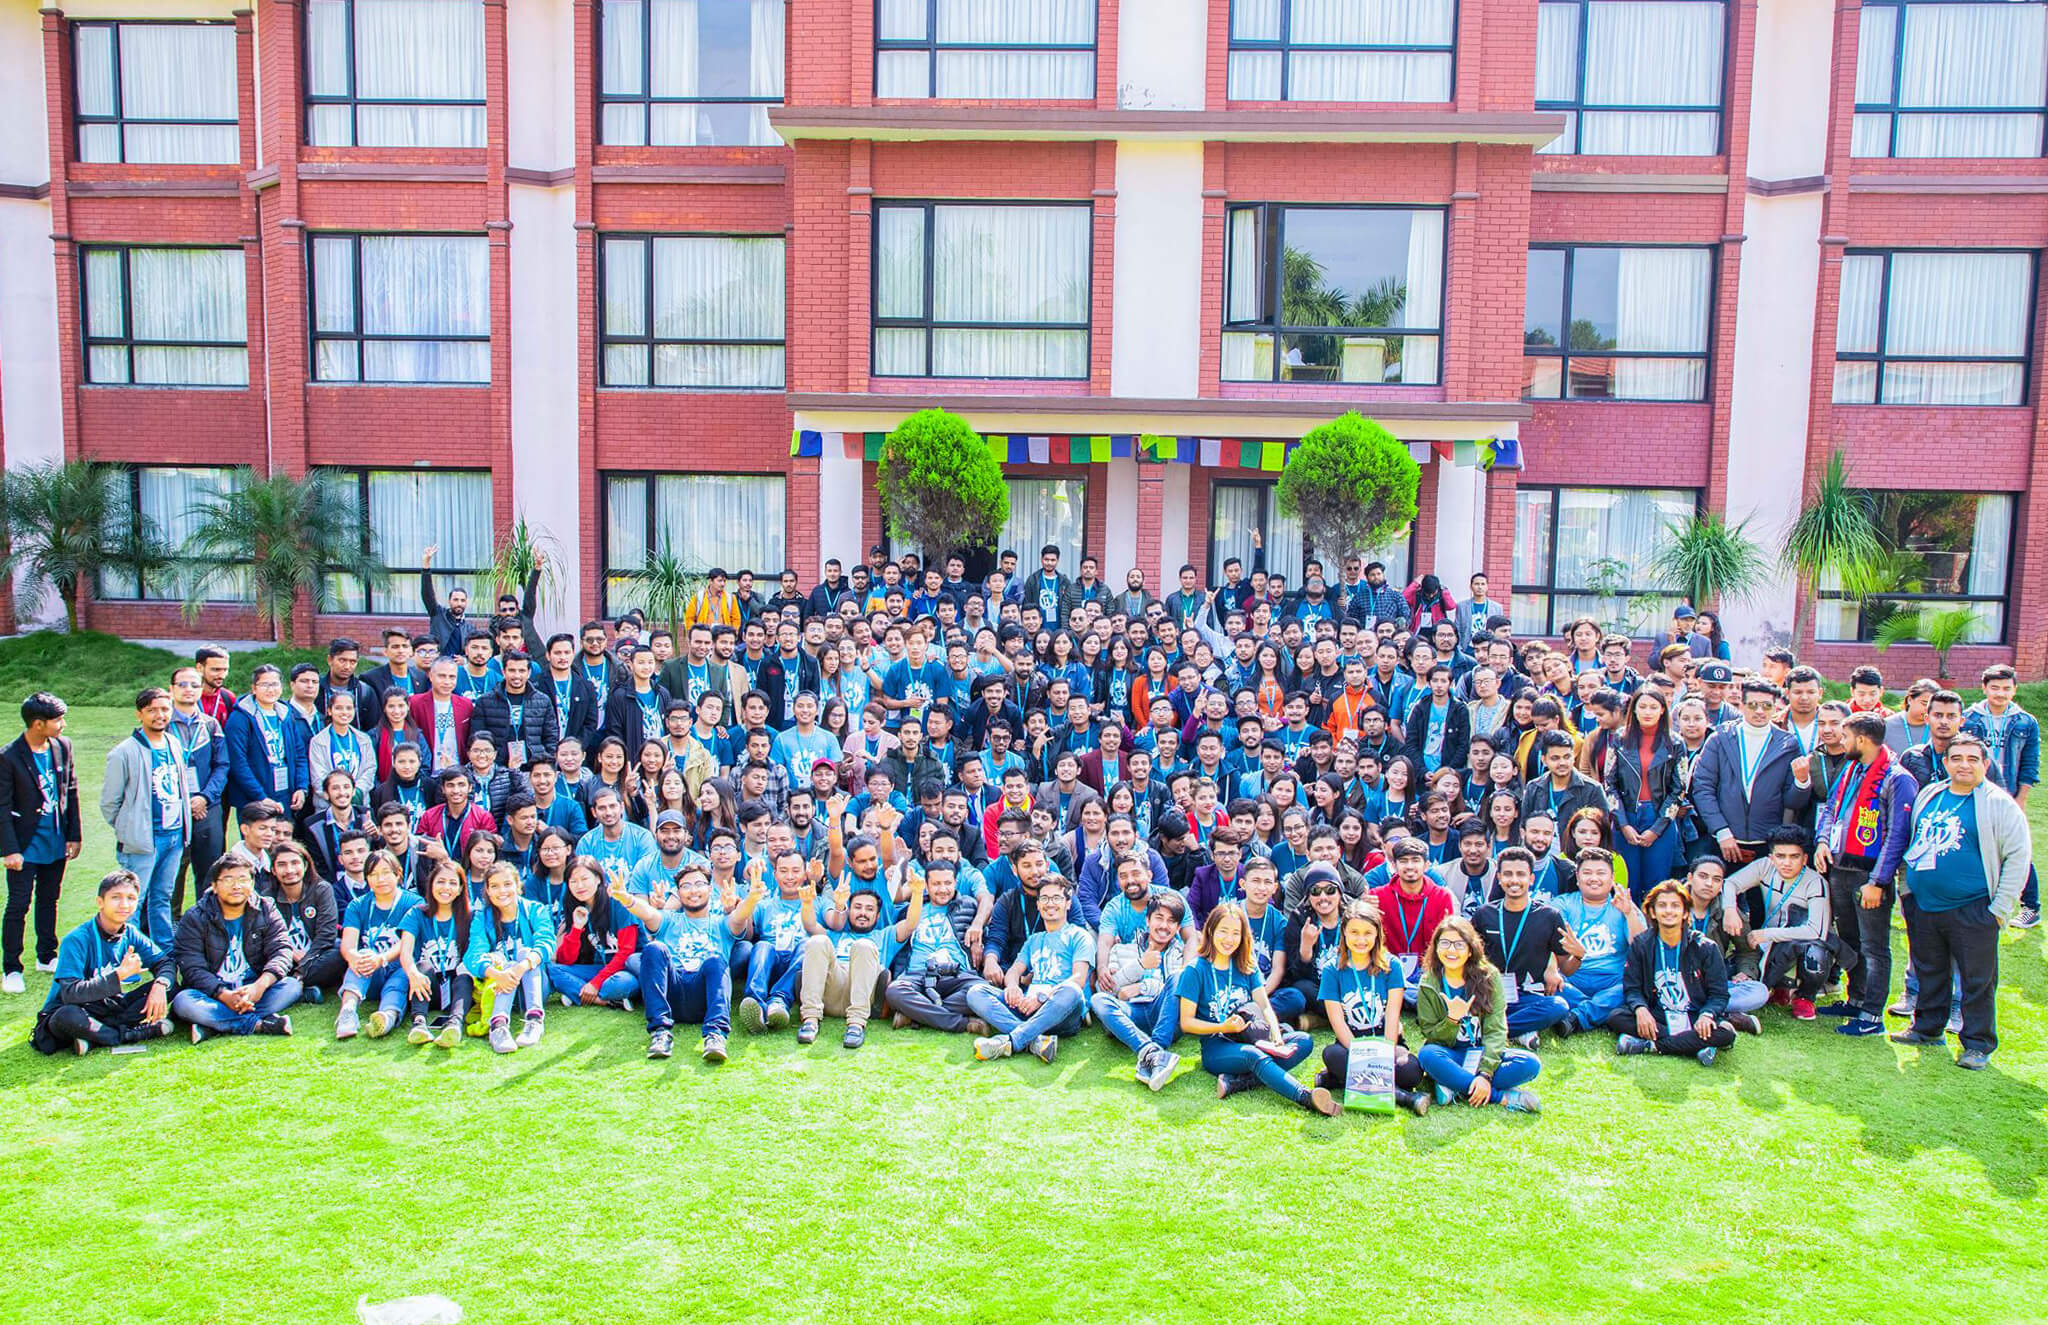 WordCamp Pokhara 2018: Everything That Happened at the Event